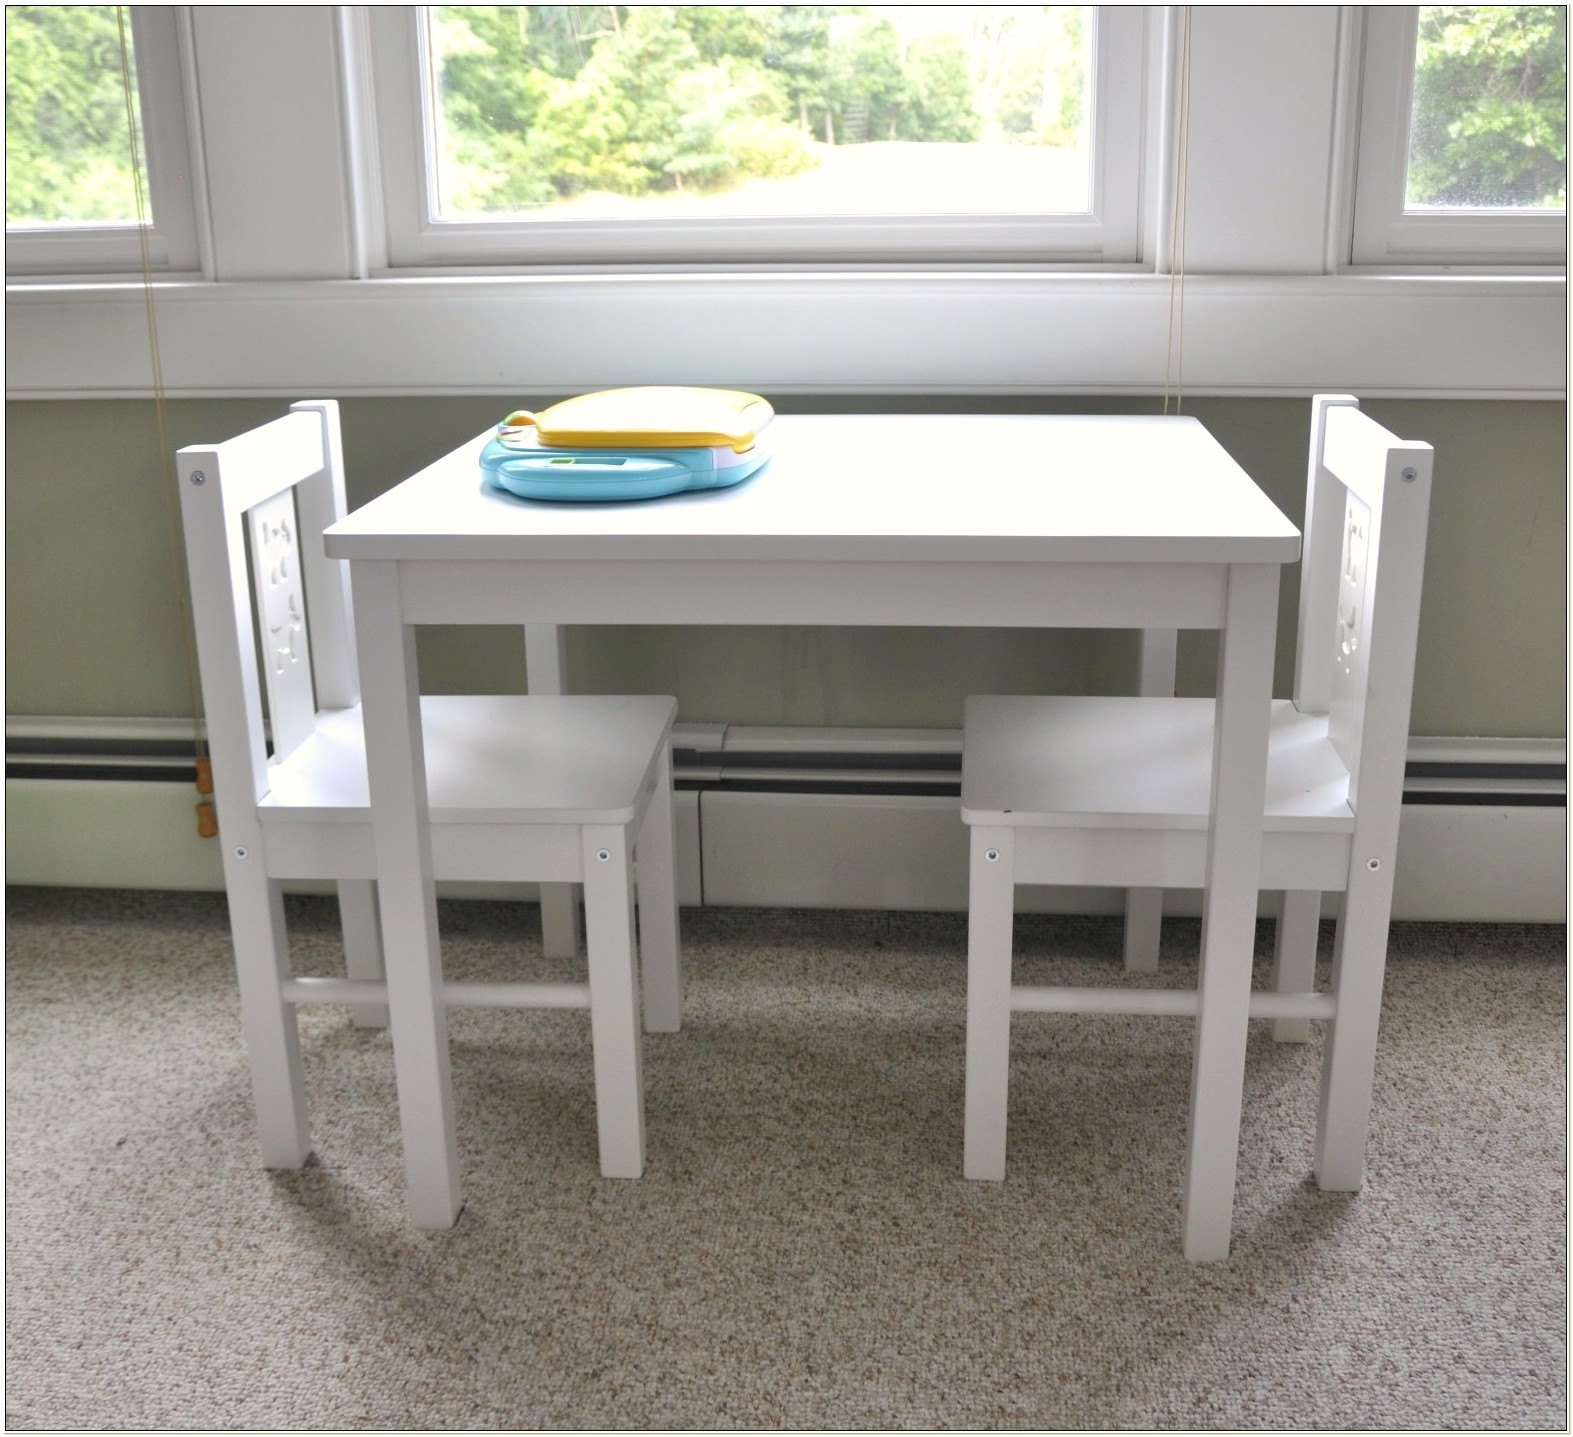 Ikea Childrens Table And Chairs Nz